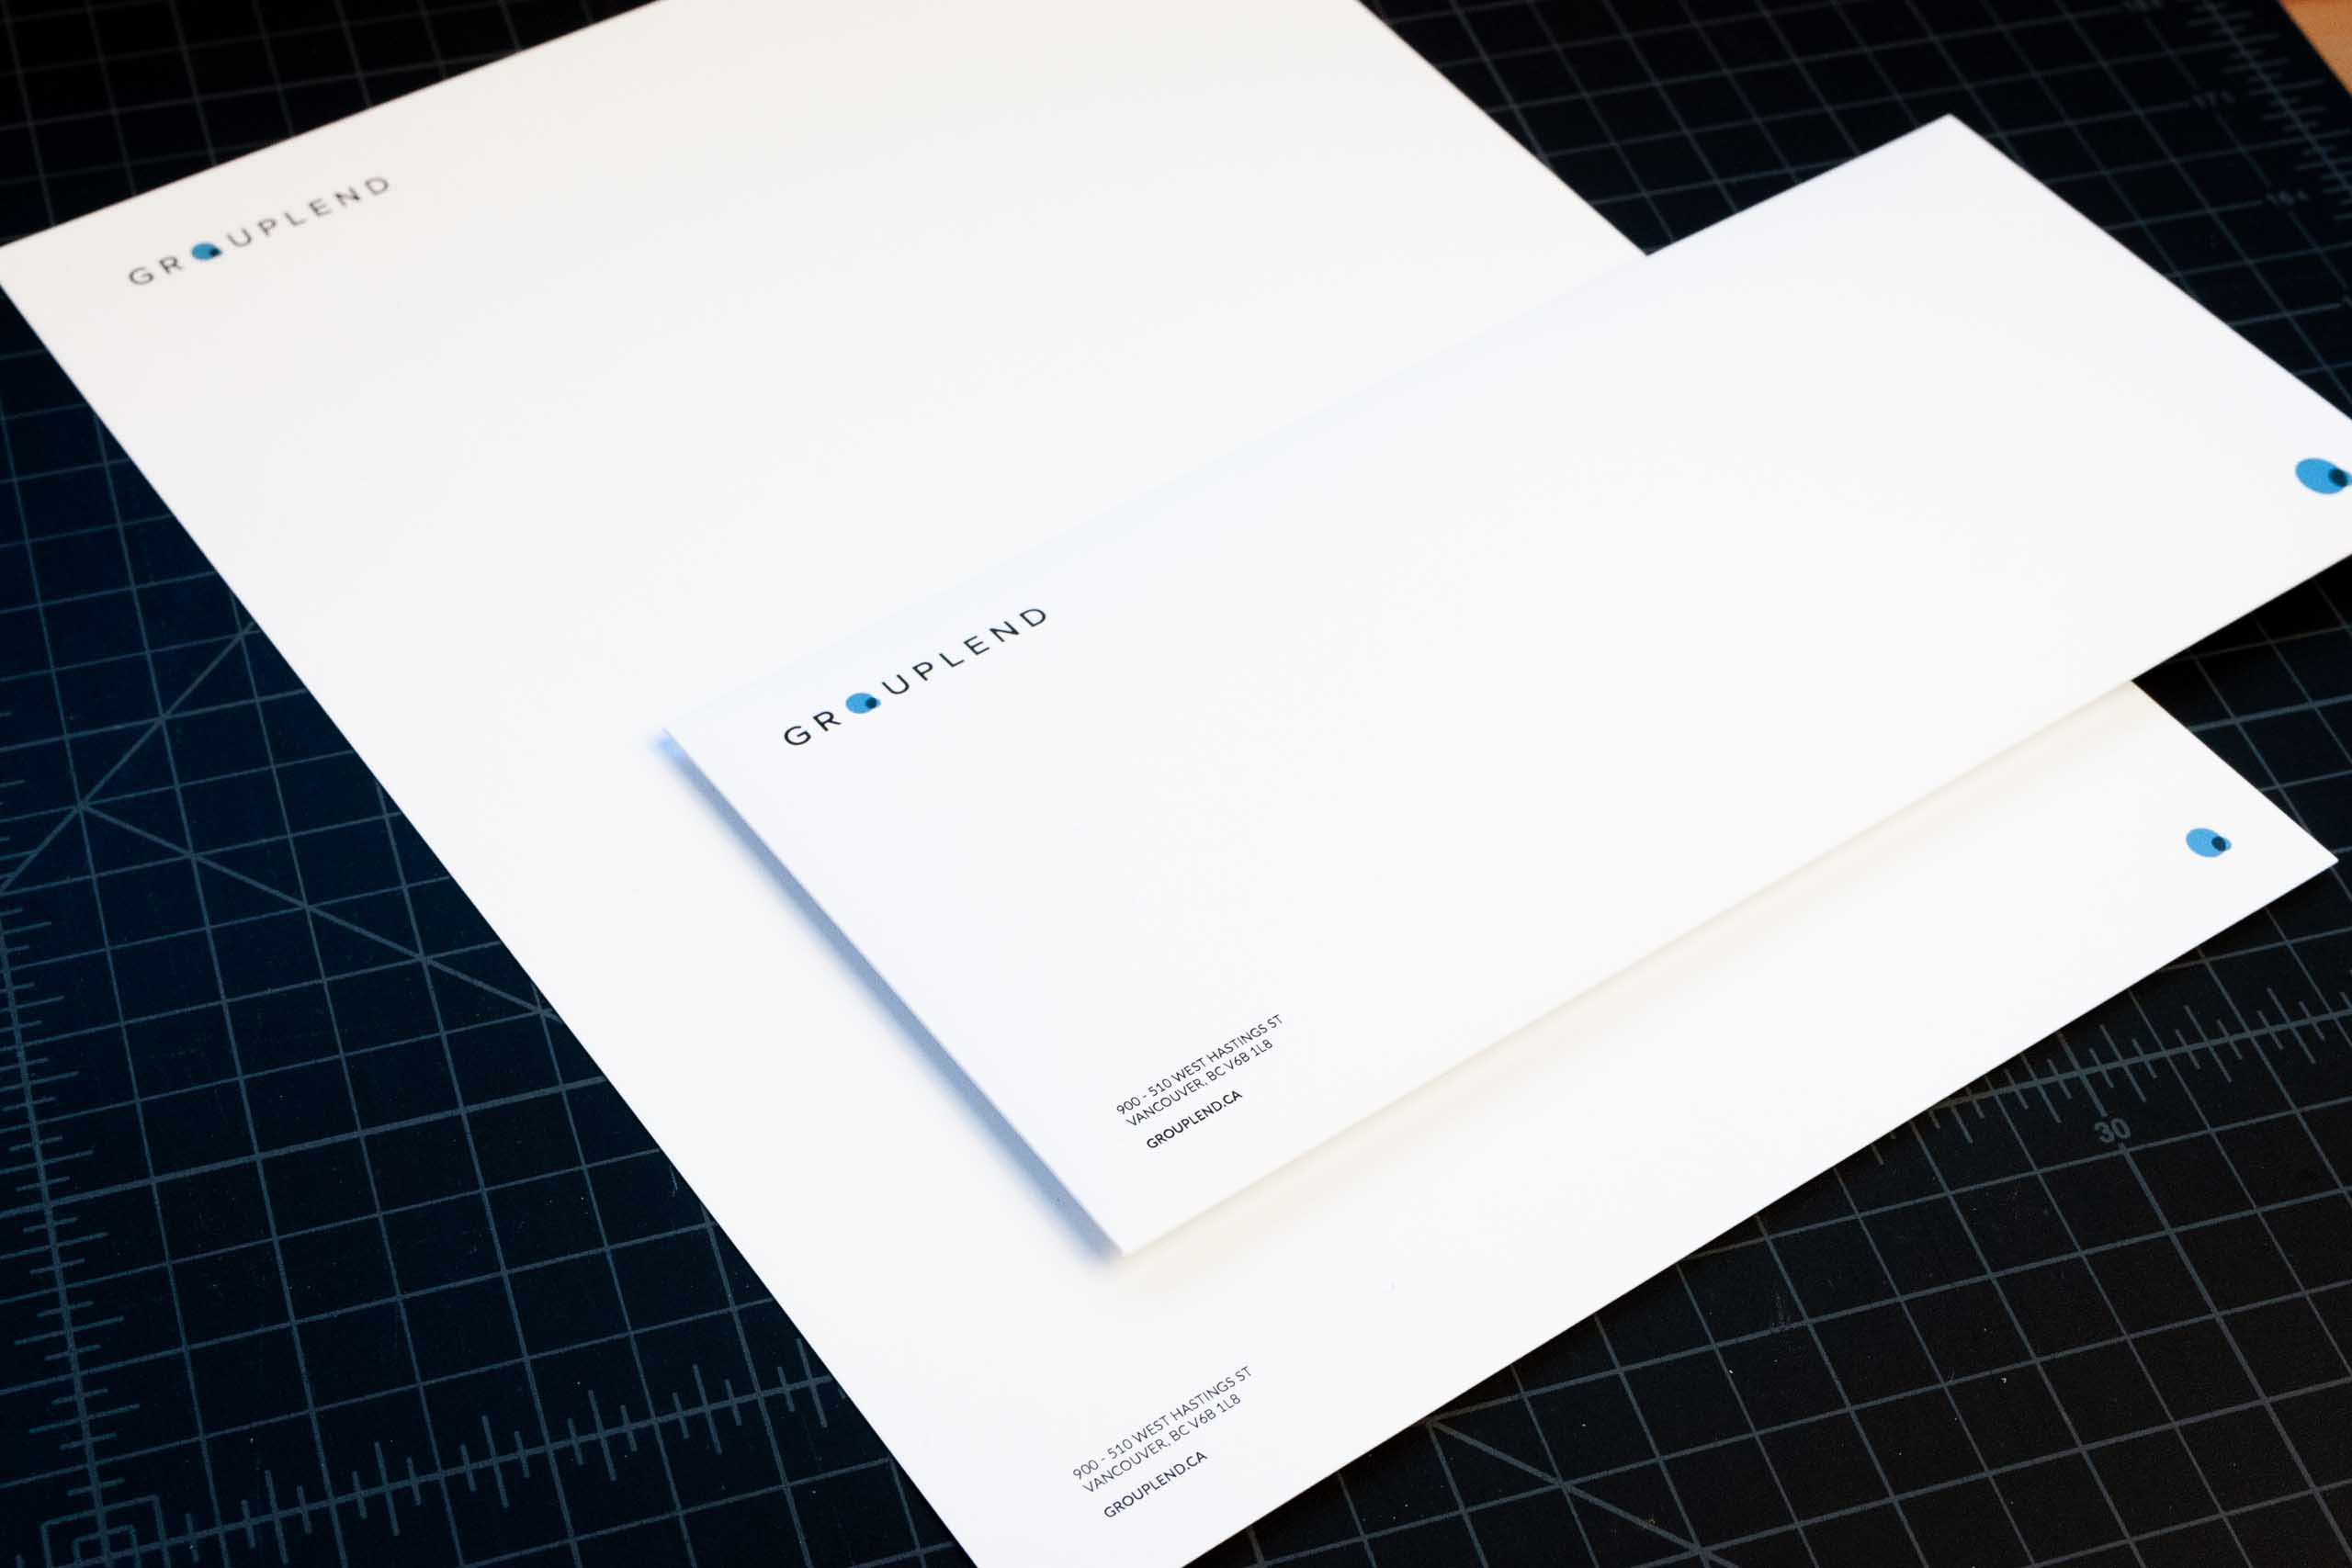 Grouplend letterhead and envelope — by Yagnyuk.